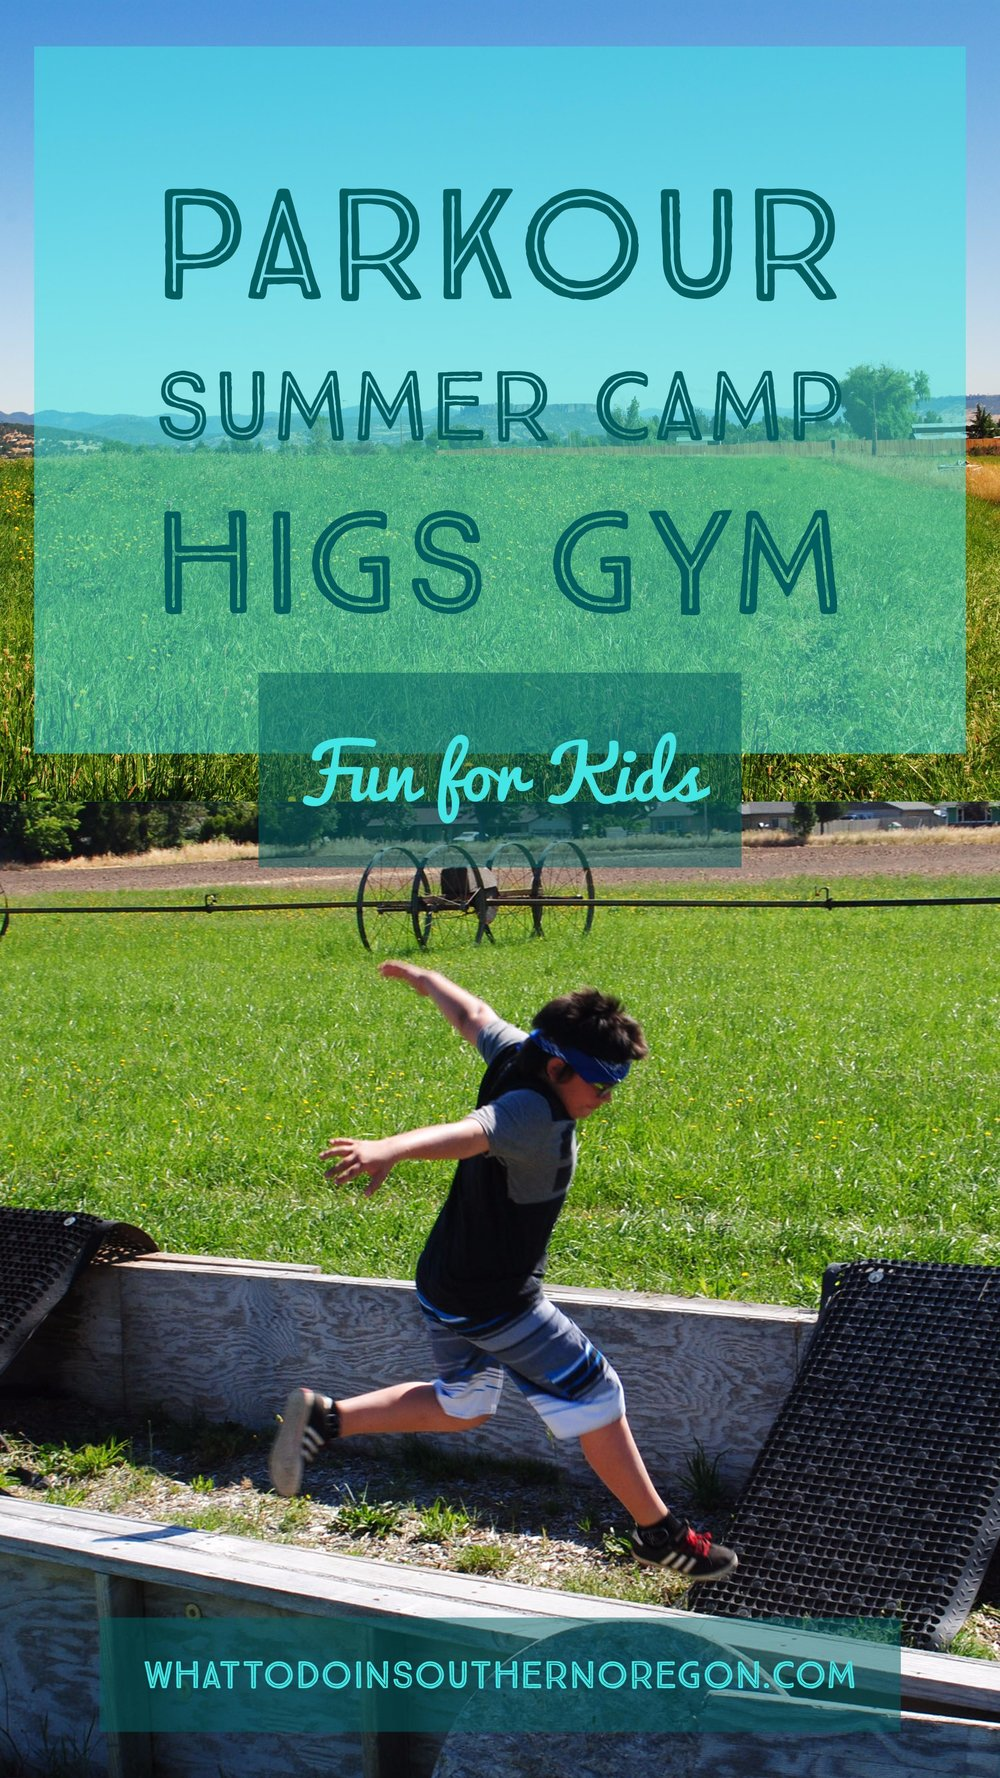 HIGS GYM - PARKOUR SUMMER CAMP - What to do in Southern Oregon - Things to do - Kids - Central Point - Medford